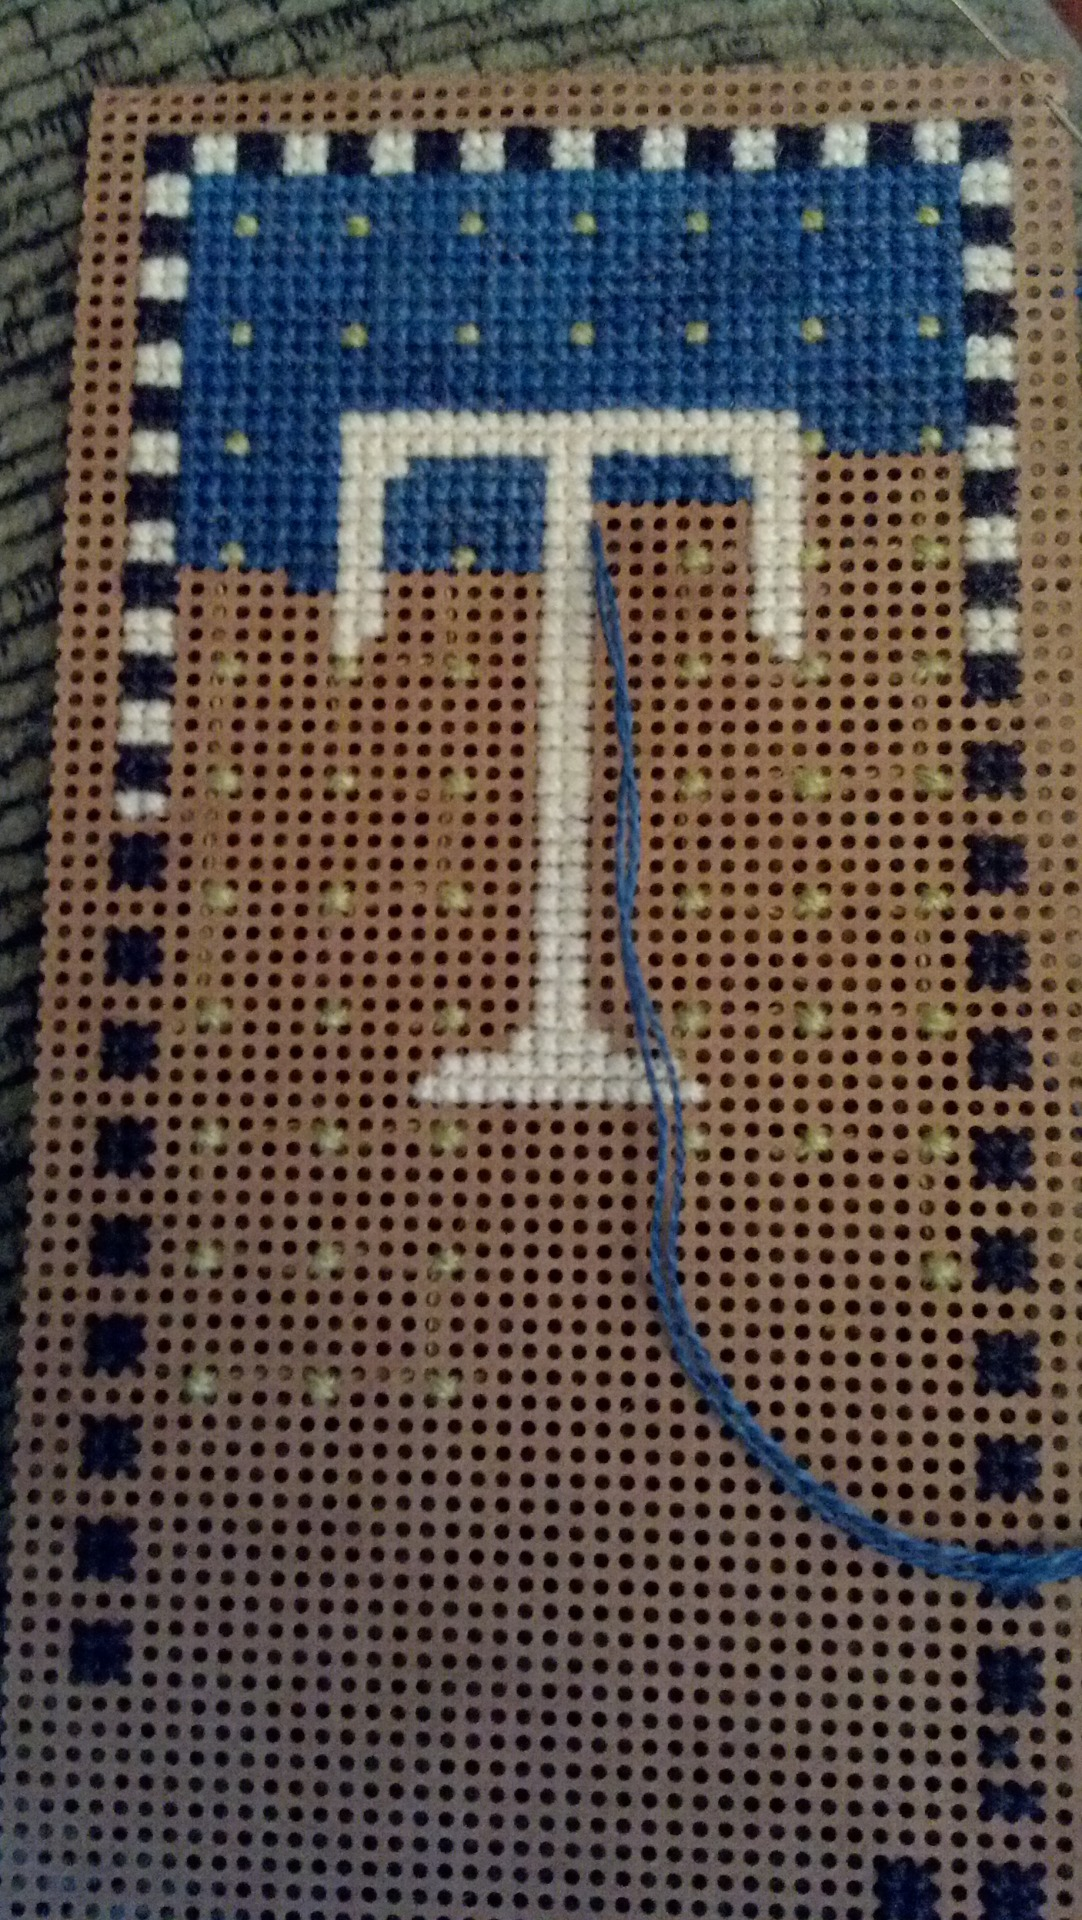 Progress photo: SamSarah's perpetual calendar - Tuesday 12/23/12 Stitched on 14 count perforated paper. Threads: Petite Shimmer, Petite Carbon, Petite Cobalt and Petite Bartlett (2 strands over 1)